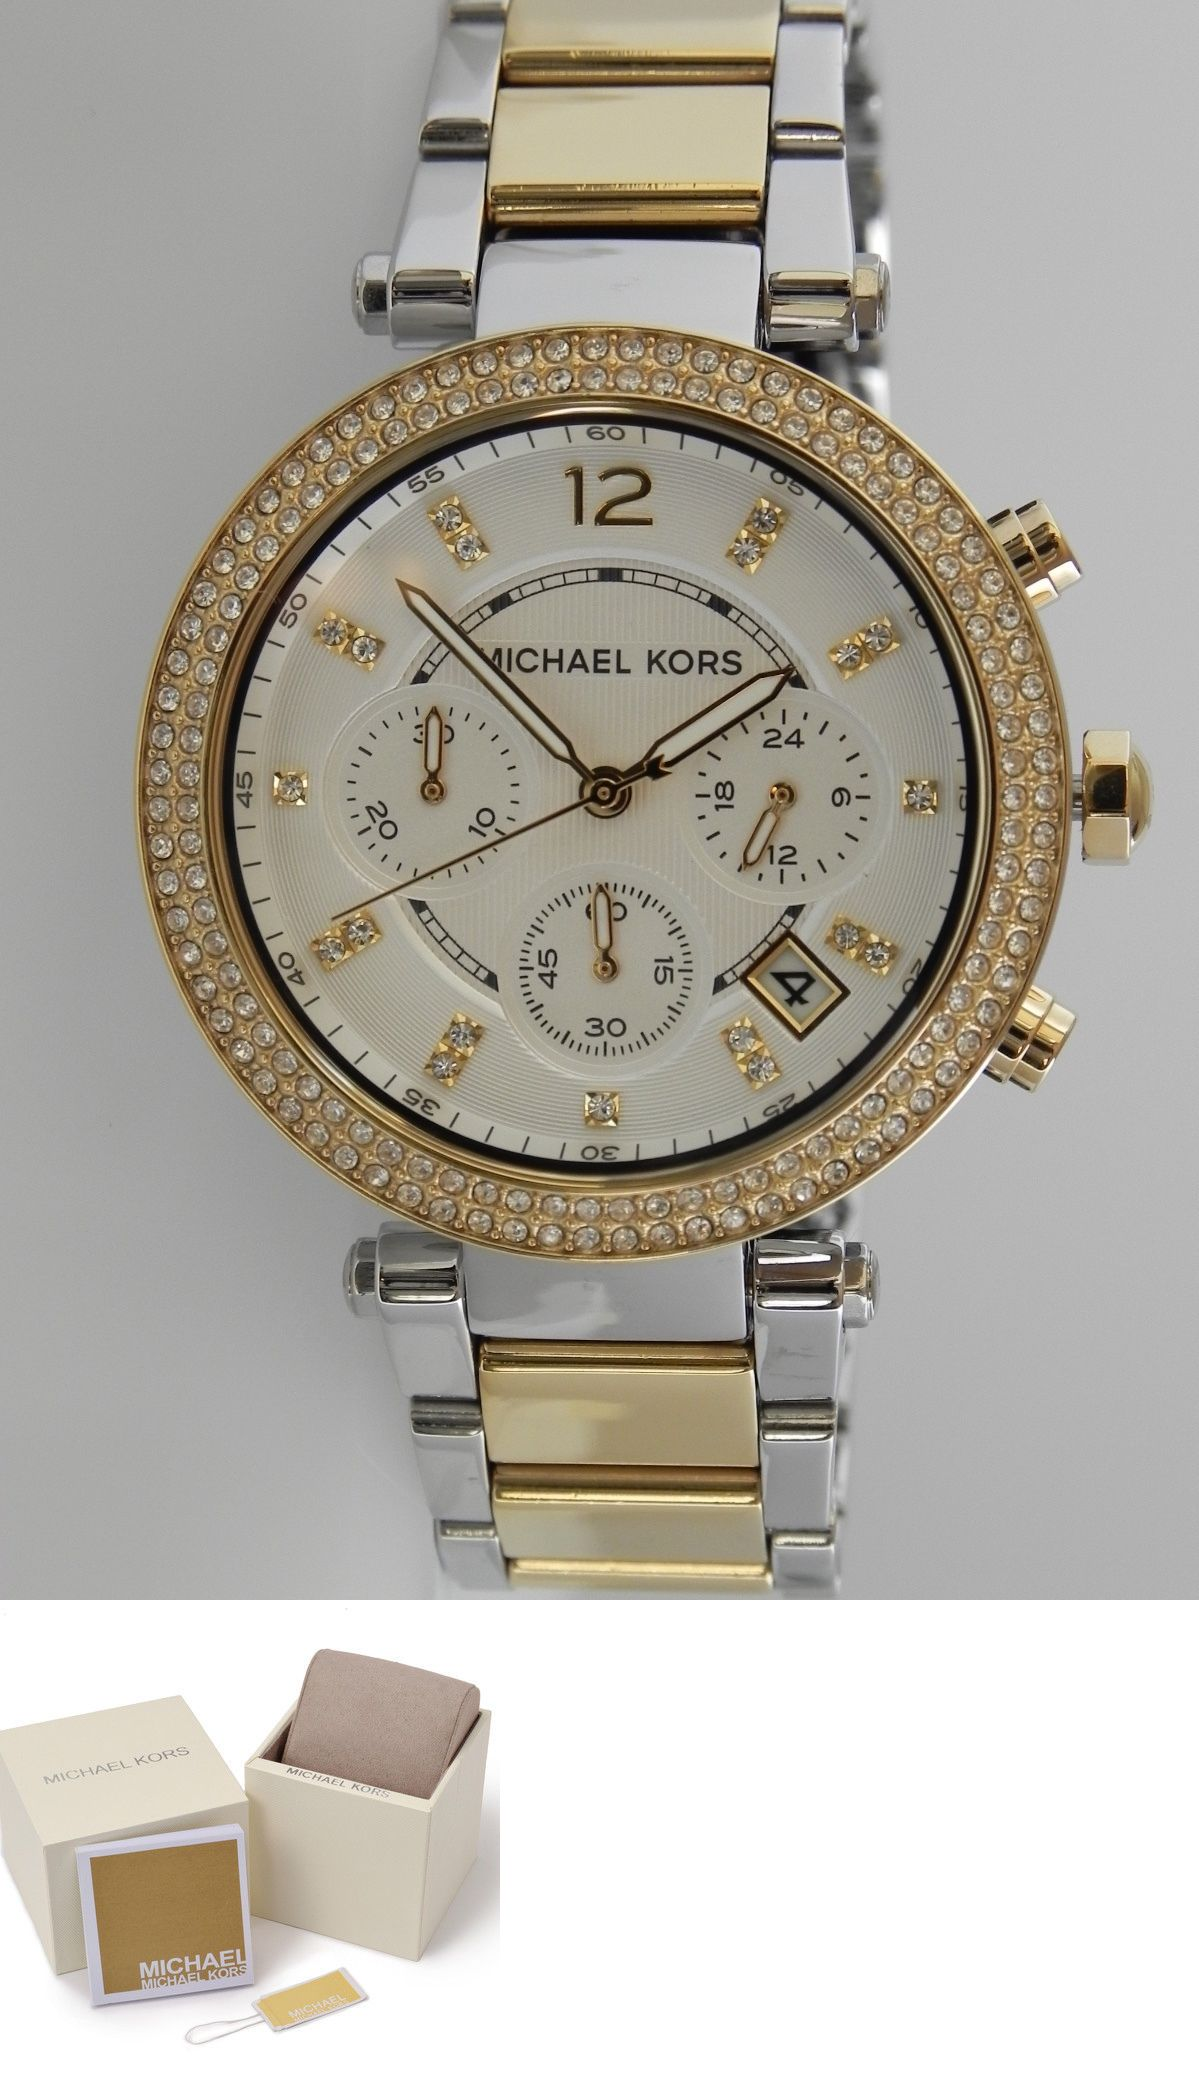 7d8afeb9b6d8 Parts and Accessories 51021  Michael Kors Women S Mk5626 Chronograph Parker  Two Tone Stainless Steel Watch -  BUY IT NOW ONLY   106.99 on  eBay  parts  ...